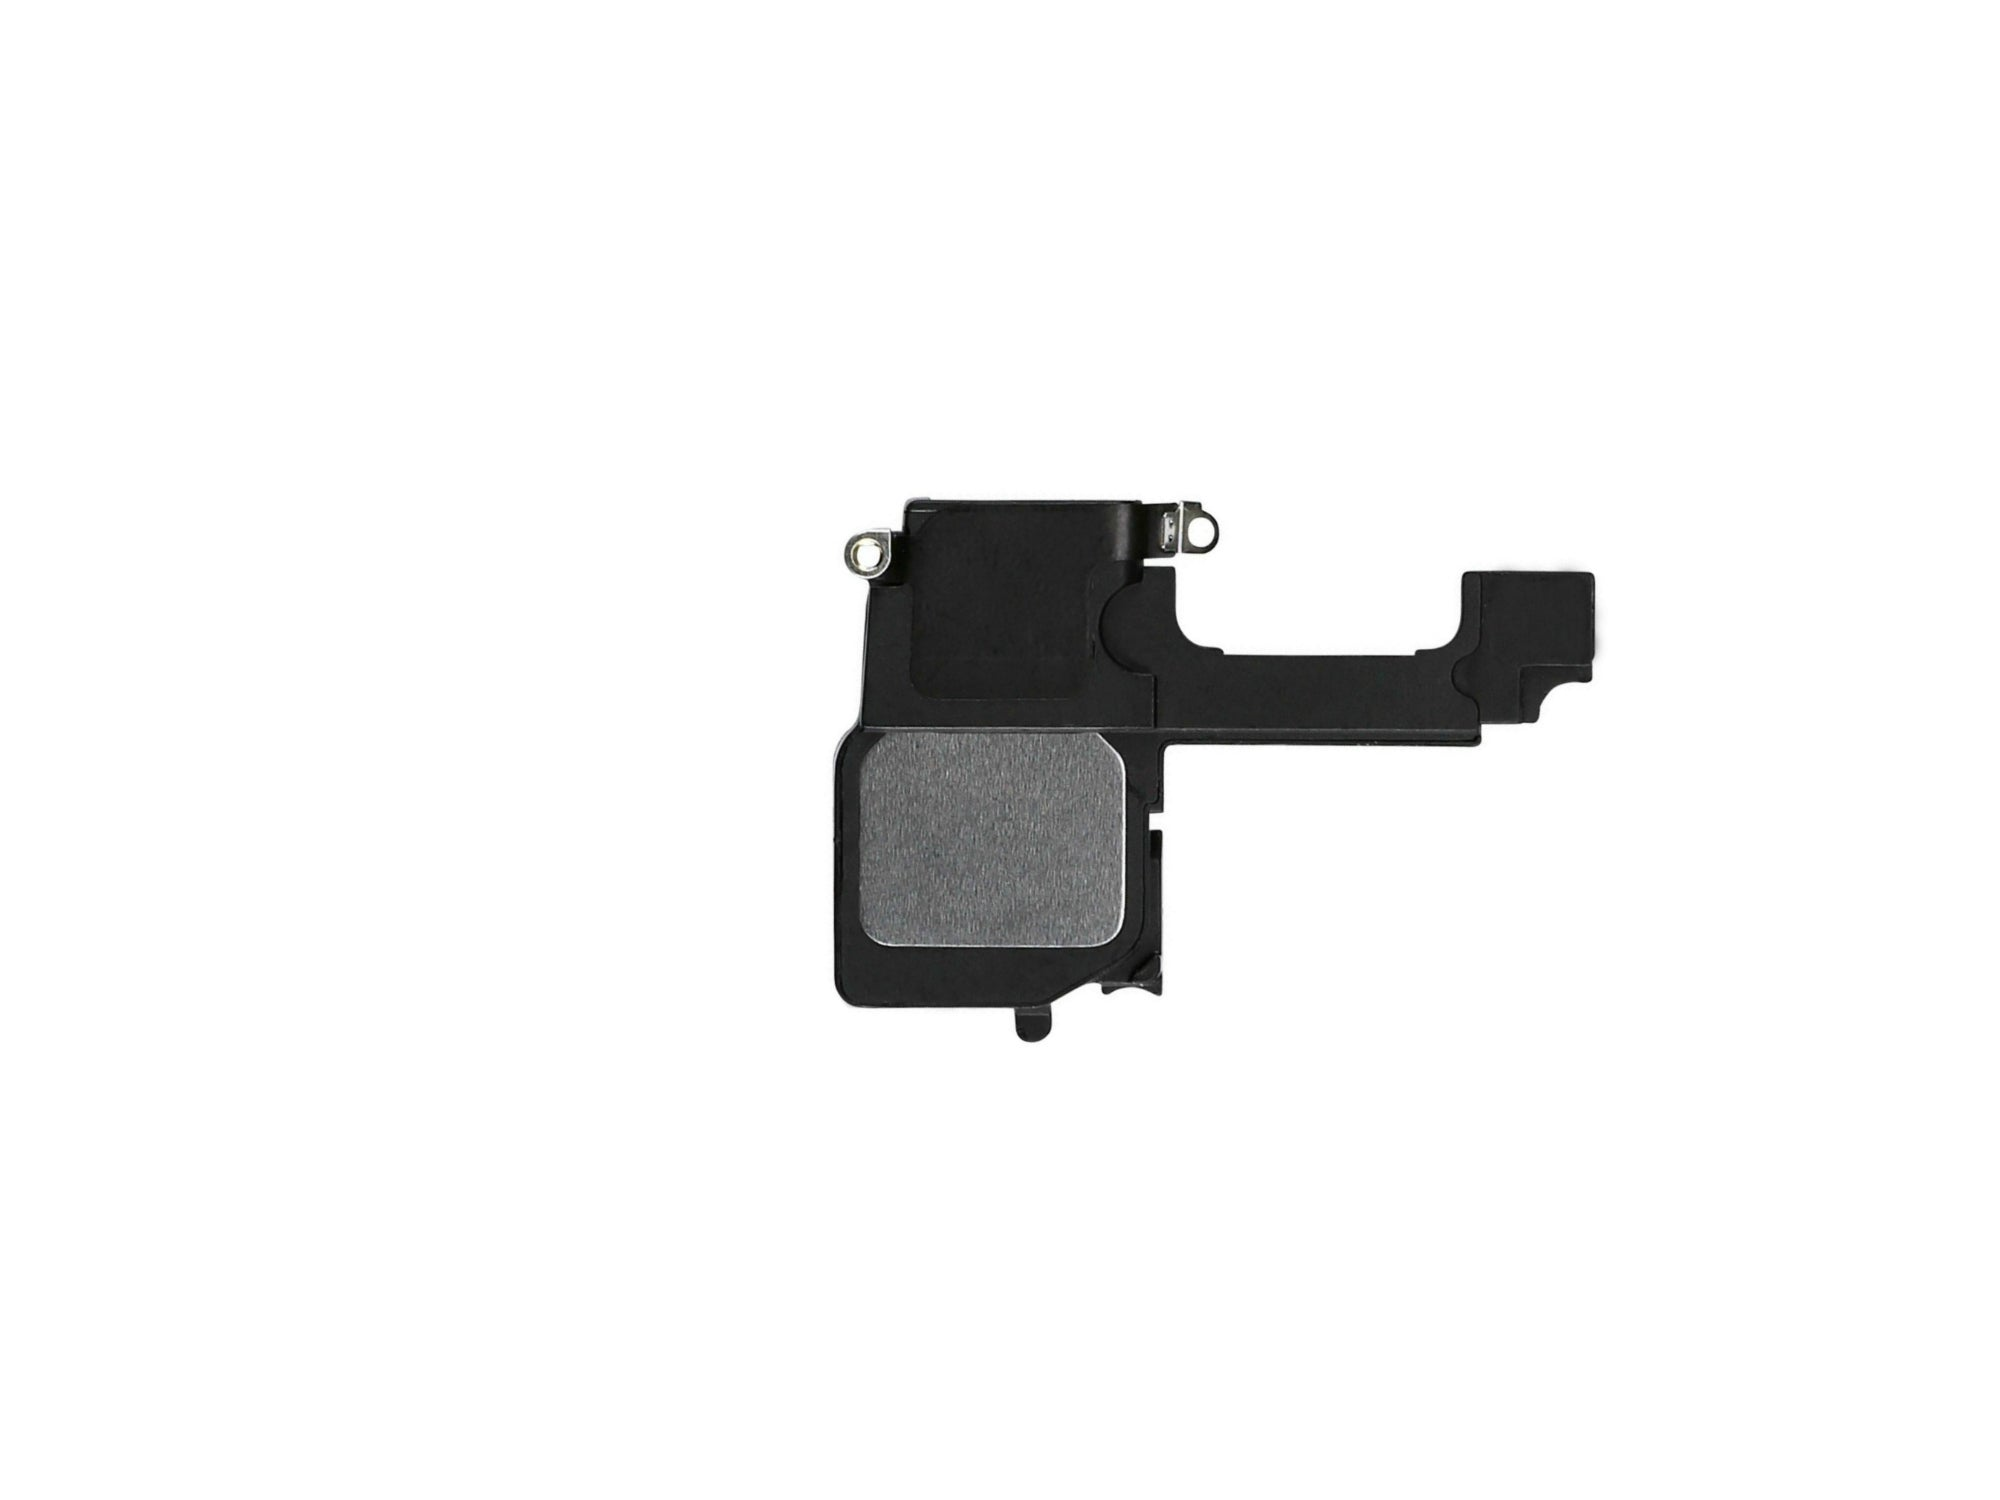 iPhone 5c Loudspeaker Replacement Kit